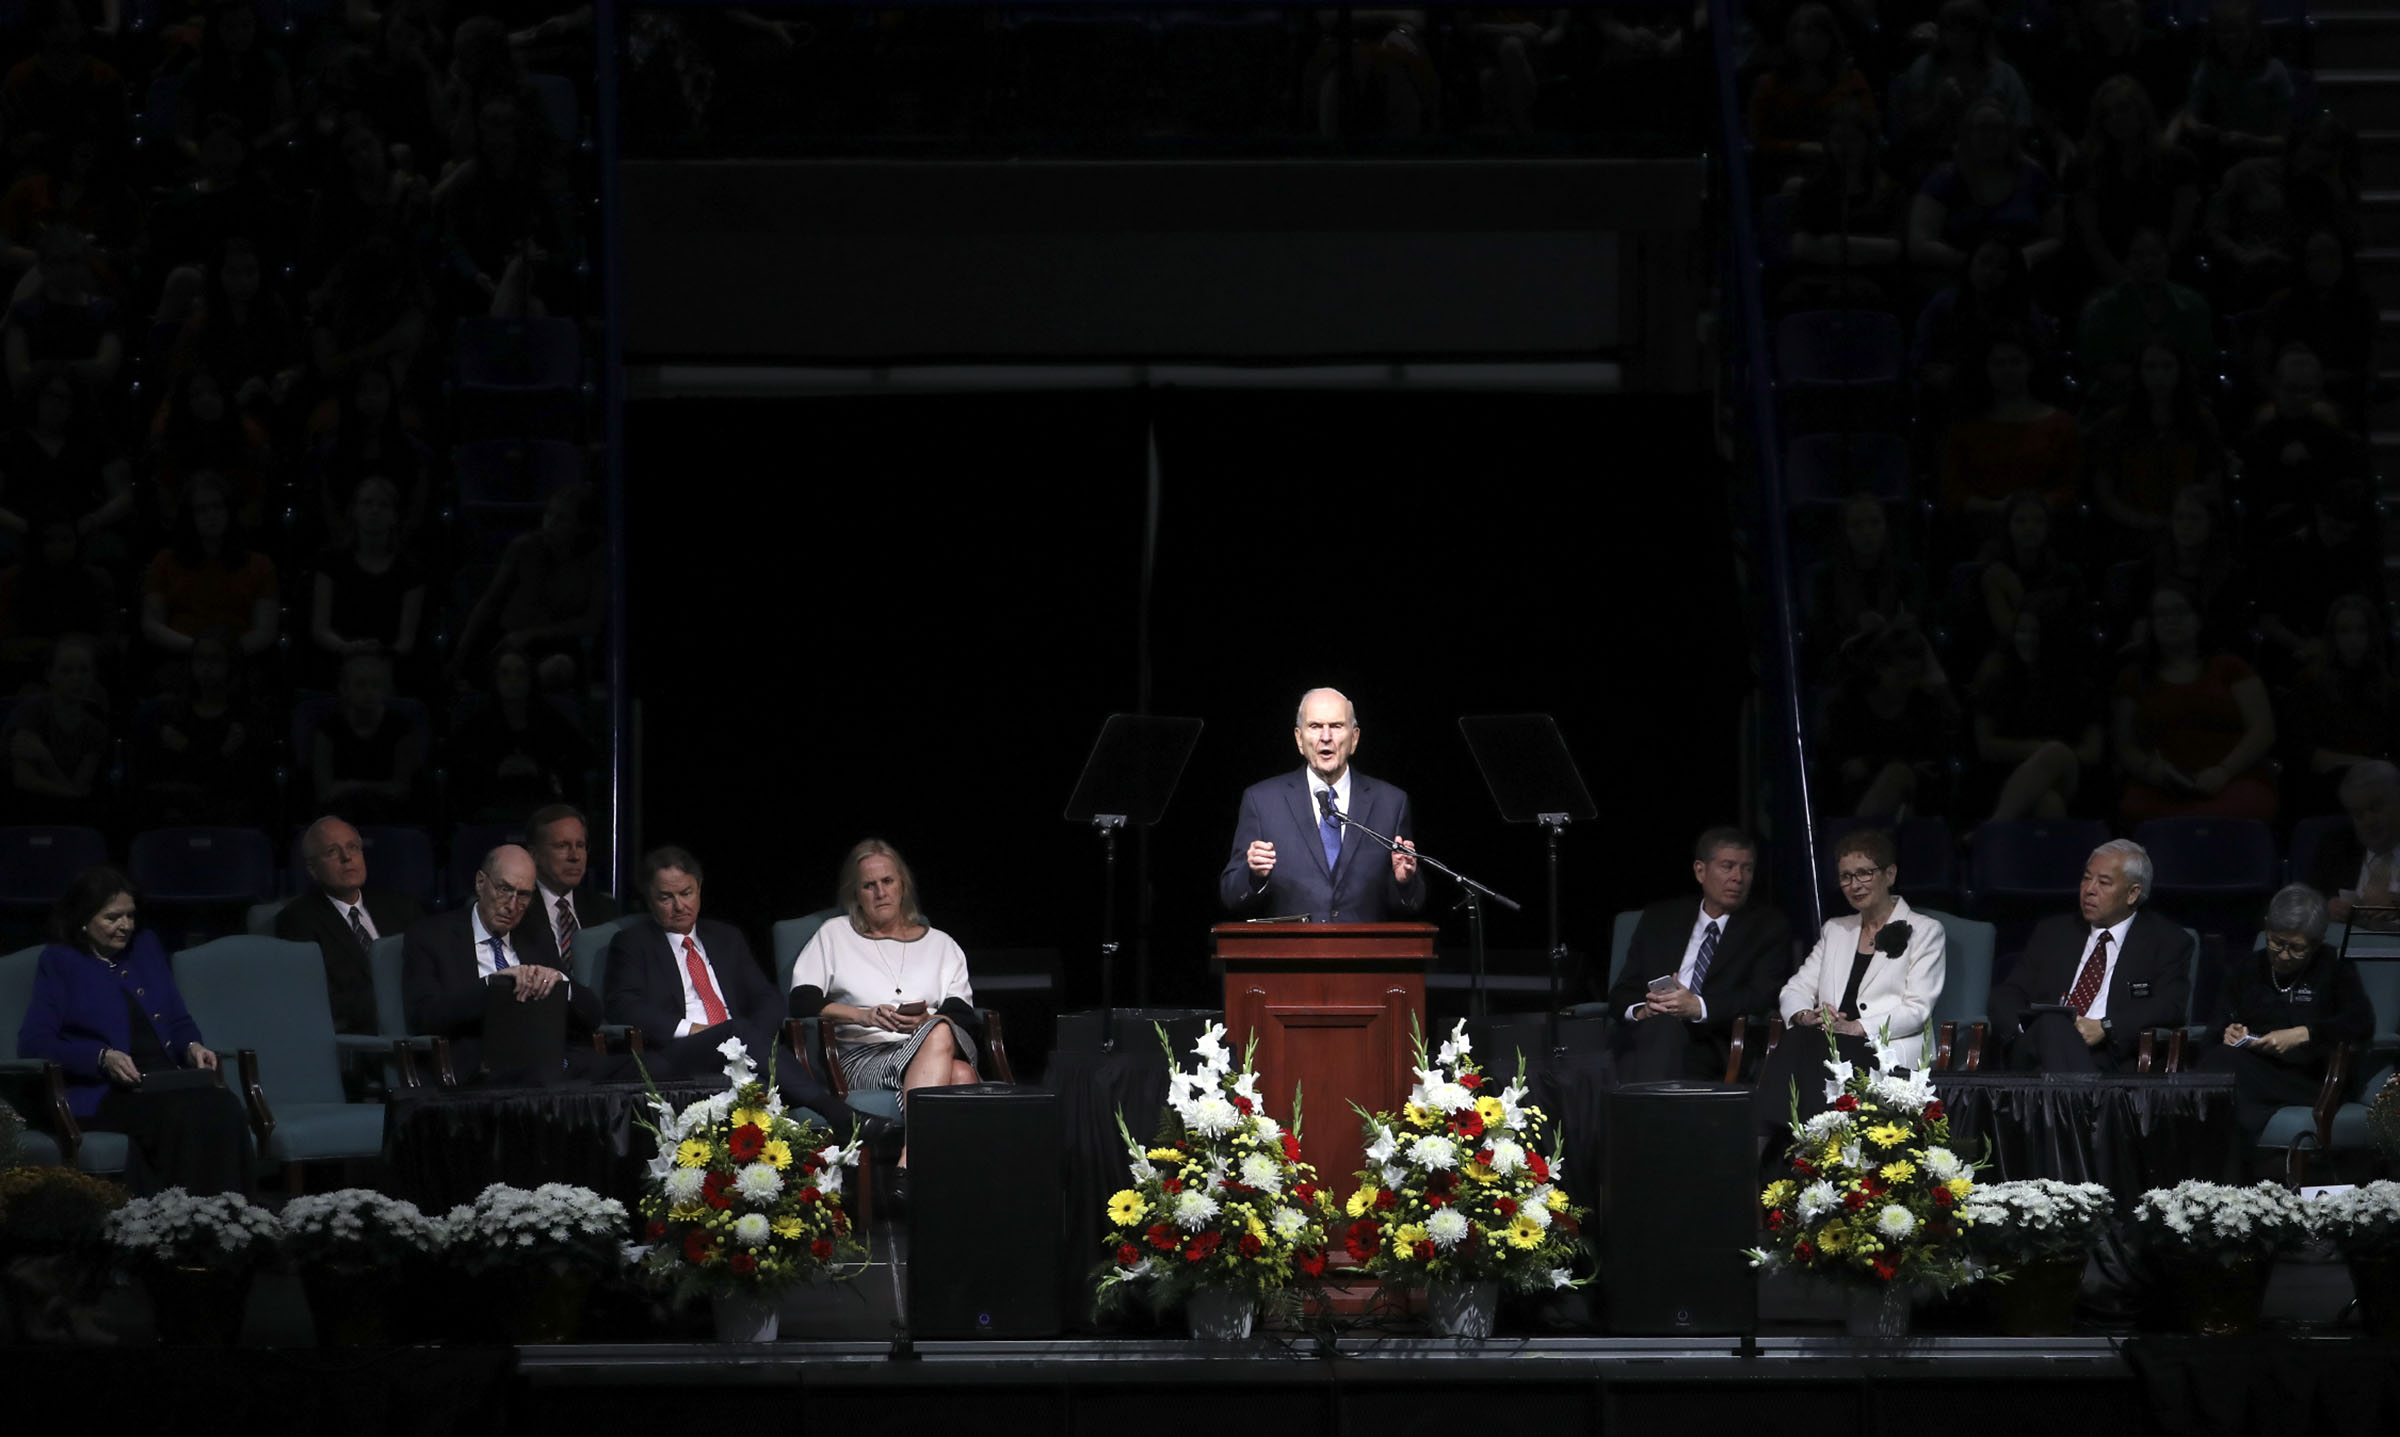 President Russell M. Nelson of The Church of Jesus Christ of Latter-day Saints speaks at the Langley Events Center in Langley, British Columbia, on Sunday, Sept. 16, 2018.